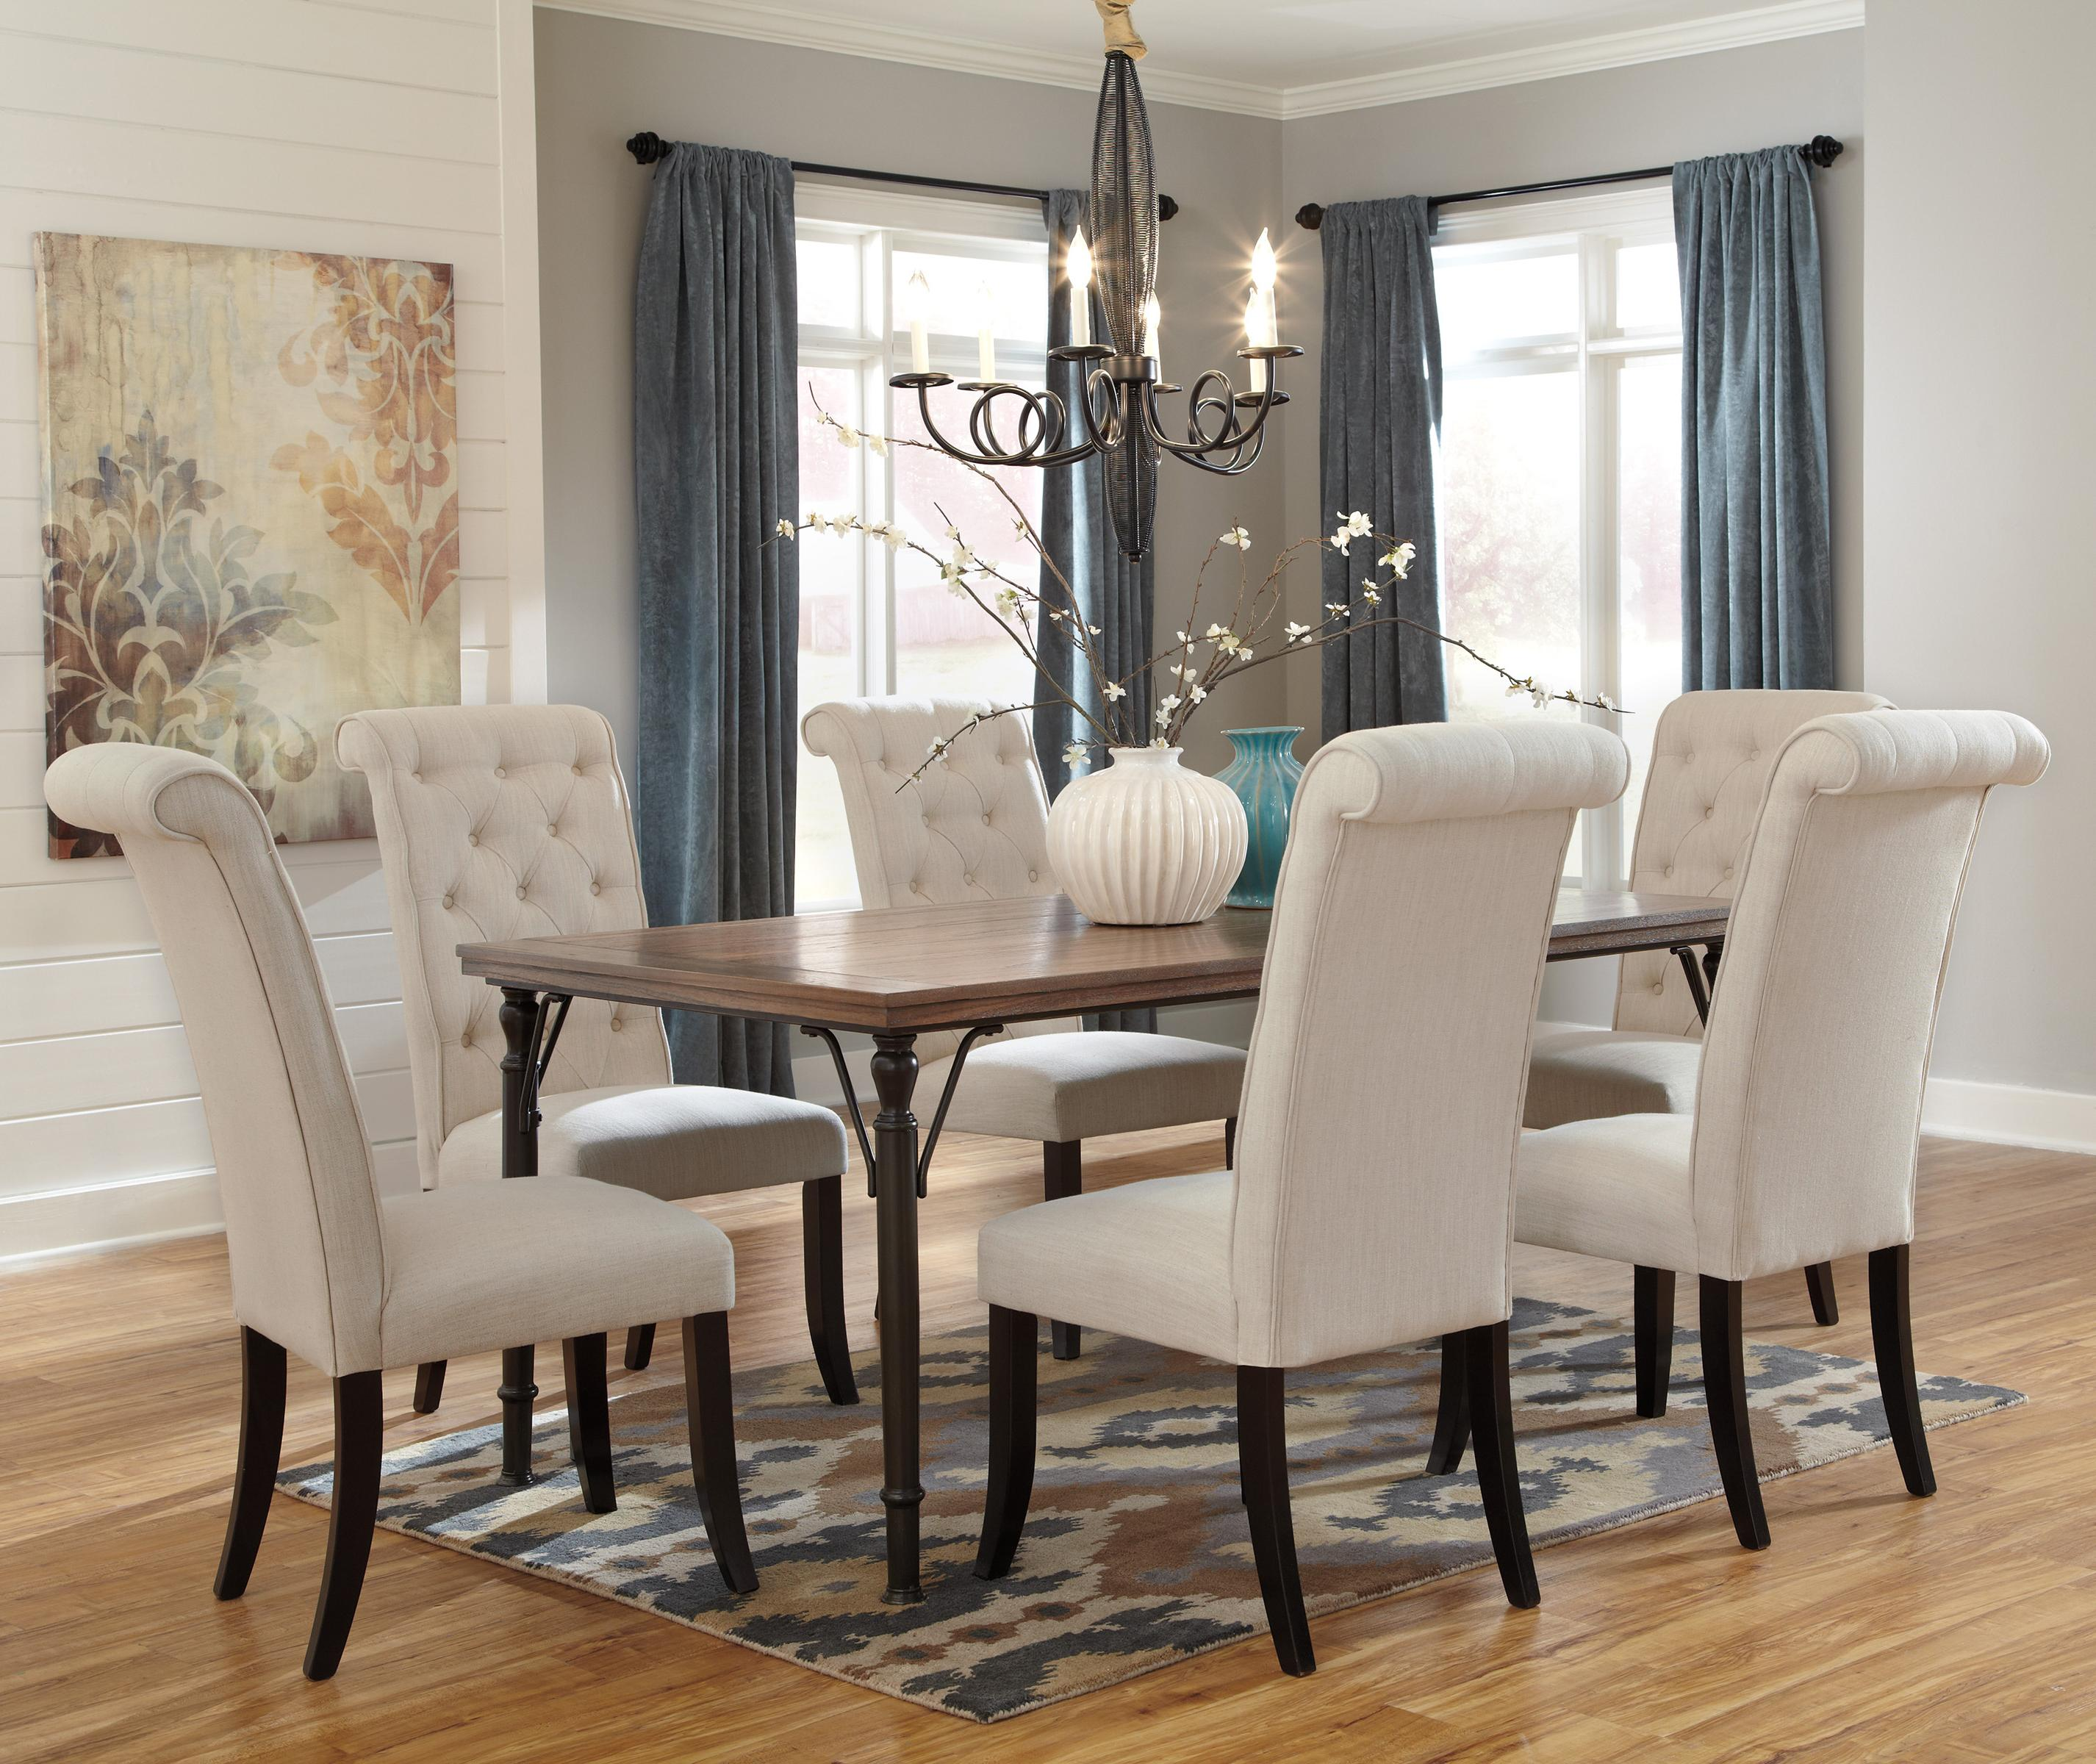 Ashley dining room table set